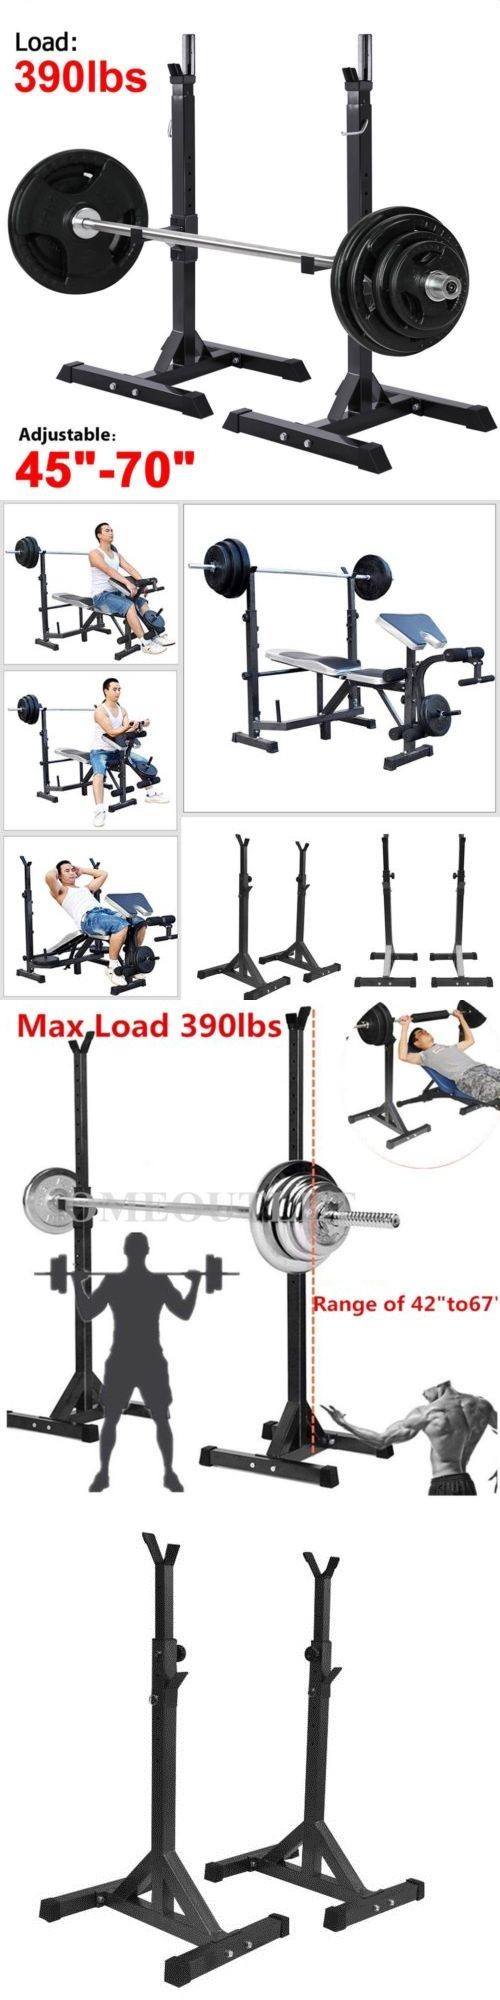 Other Strength Training 28067: 2X Adjustable Rack Standard Solid Steel Barbell Squat Bench Press Workout Stand -> BUY IT NOW ONLY: $42.36 on eBay!